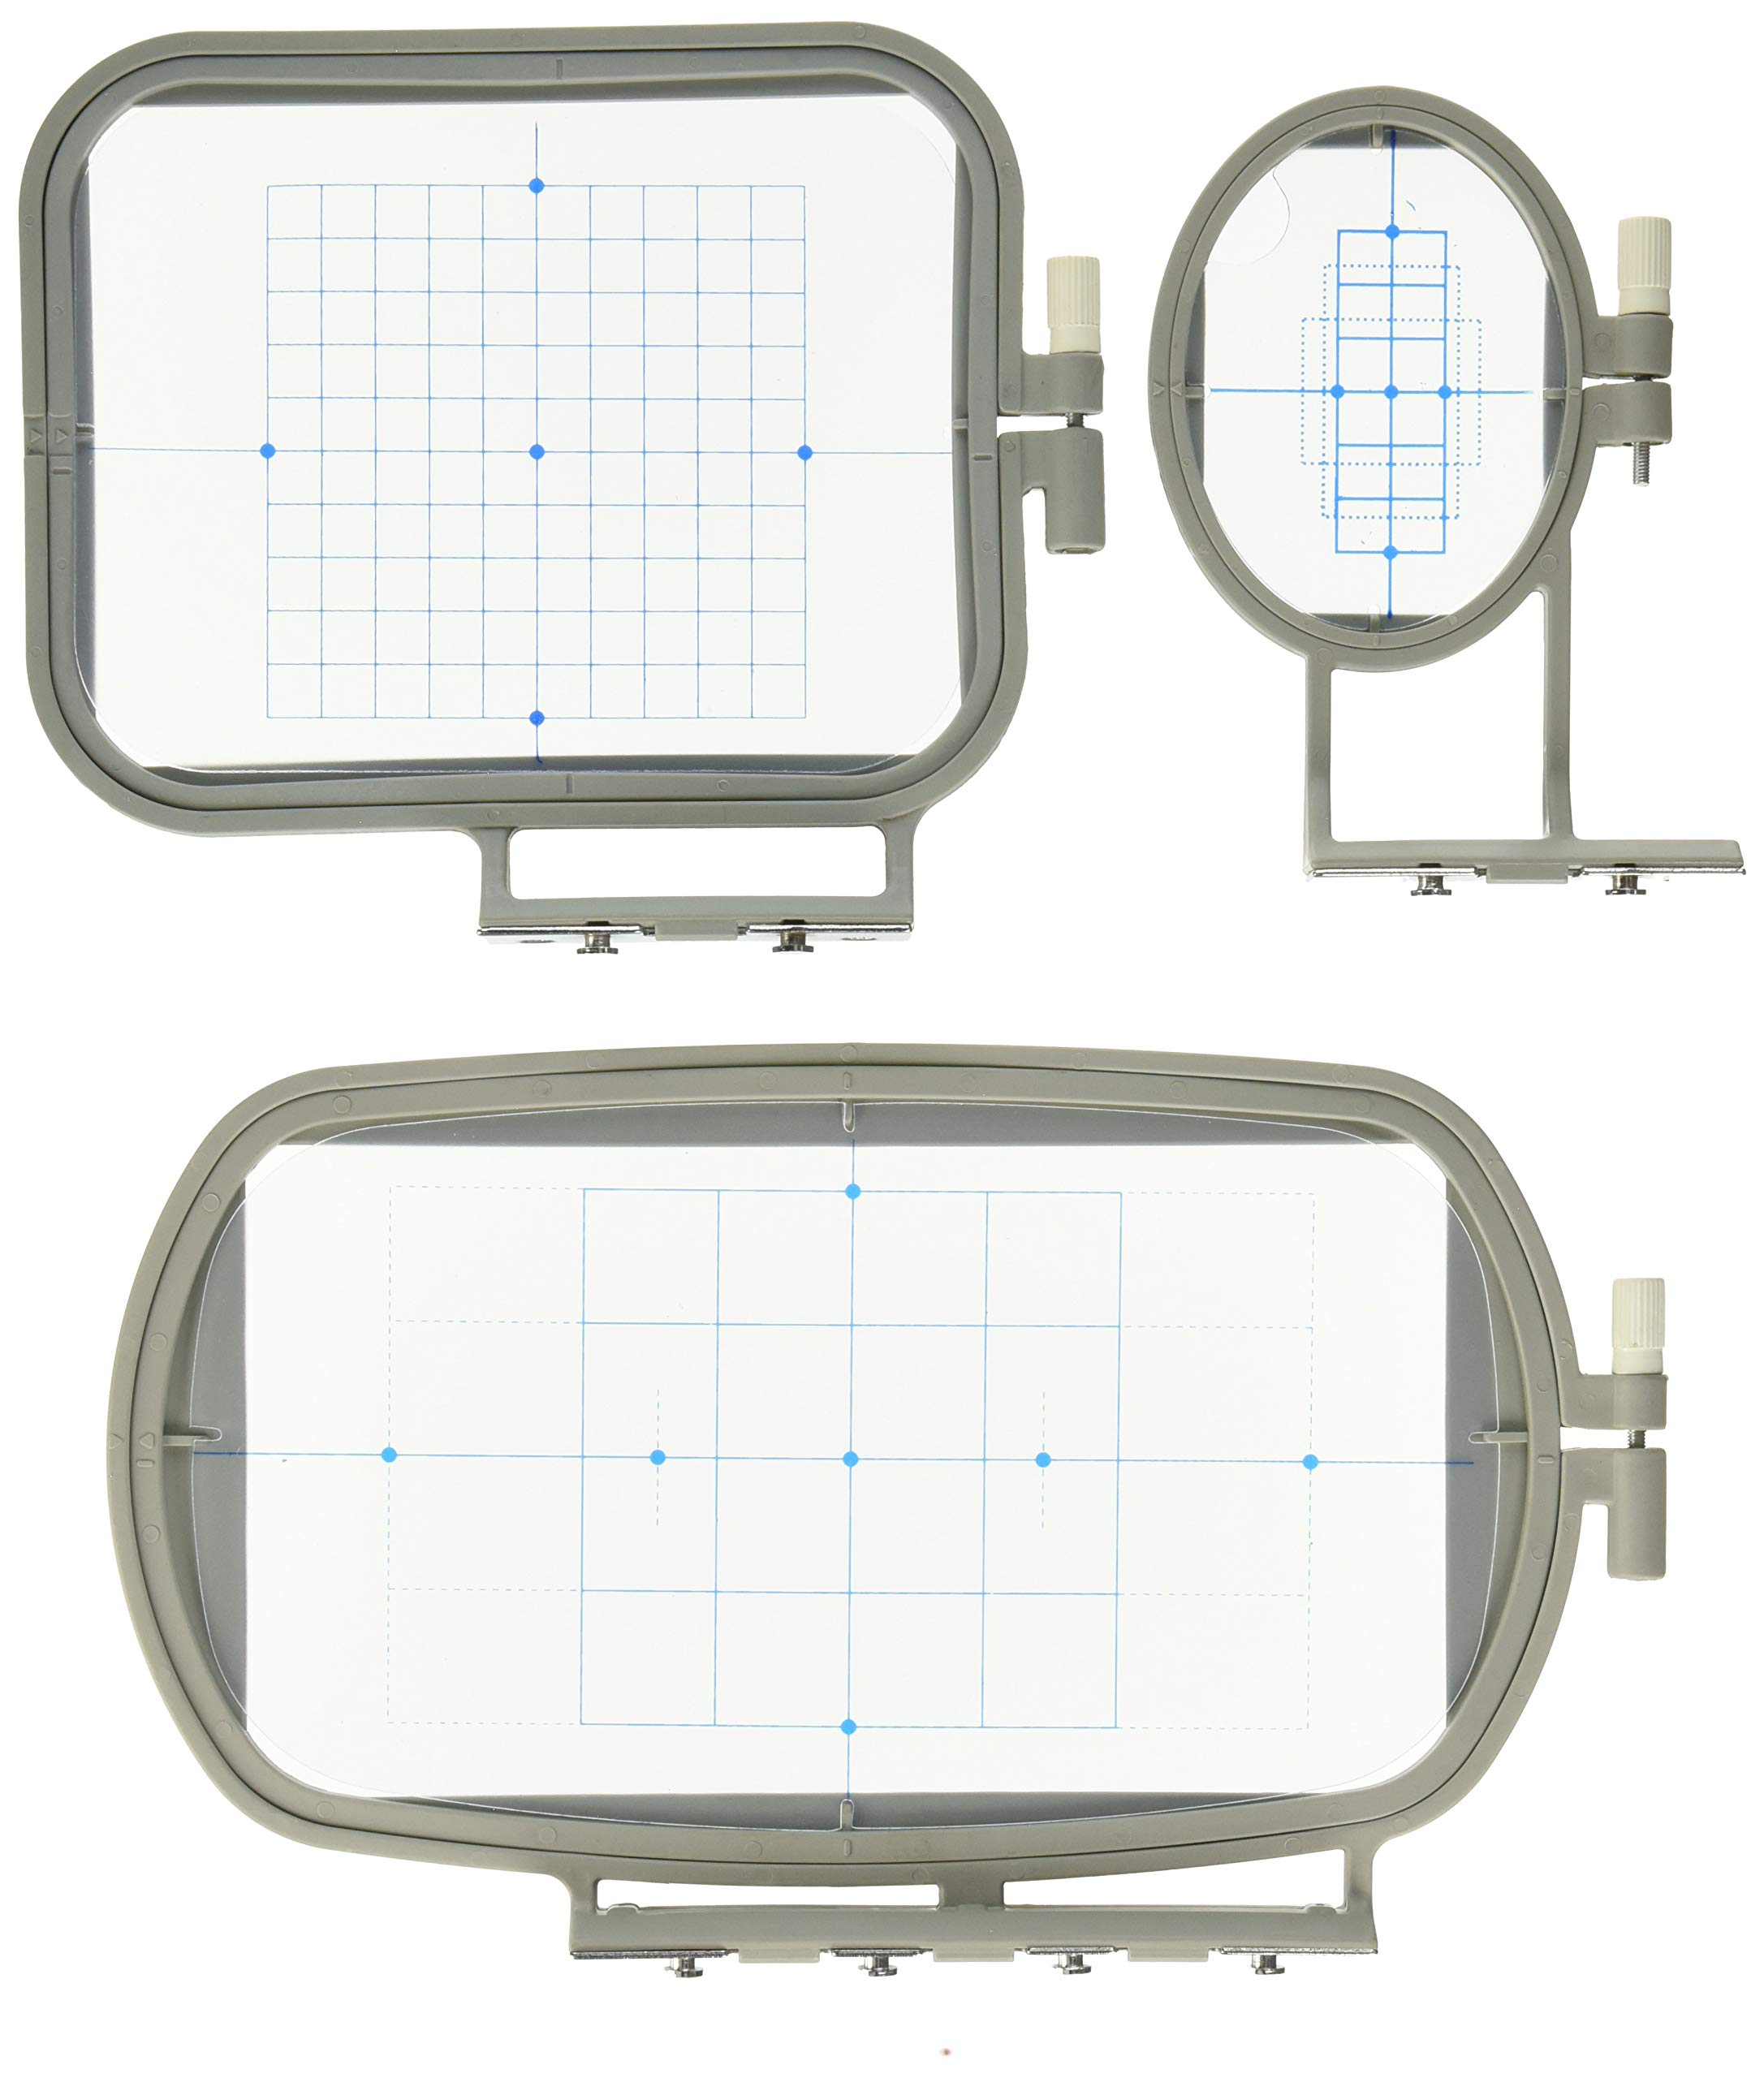 3 Piece Embroidery Hoop Brother Machines